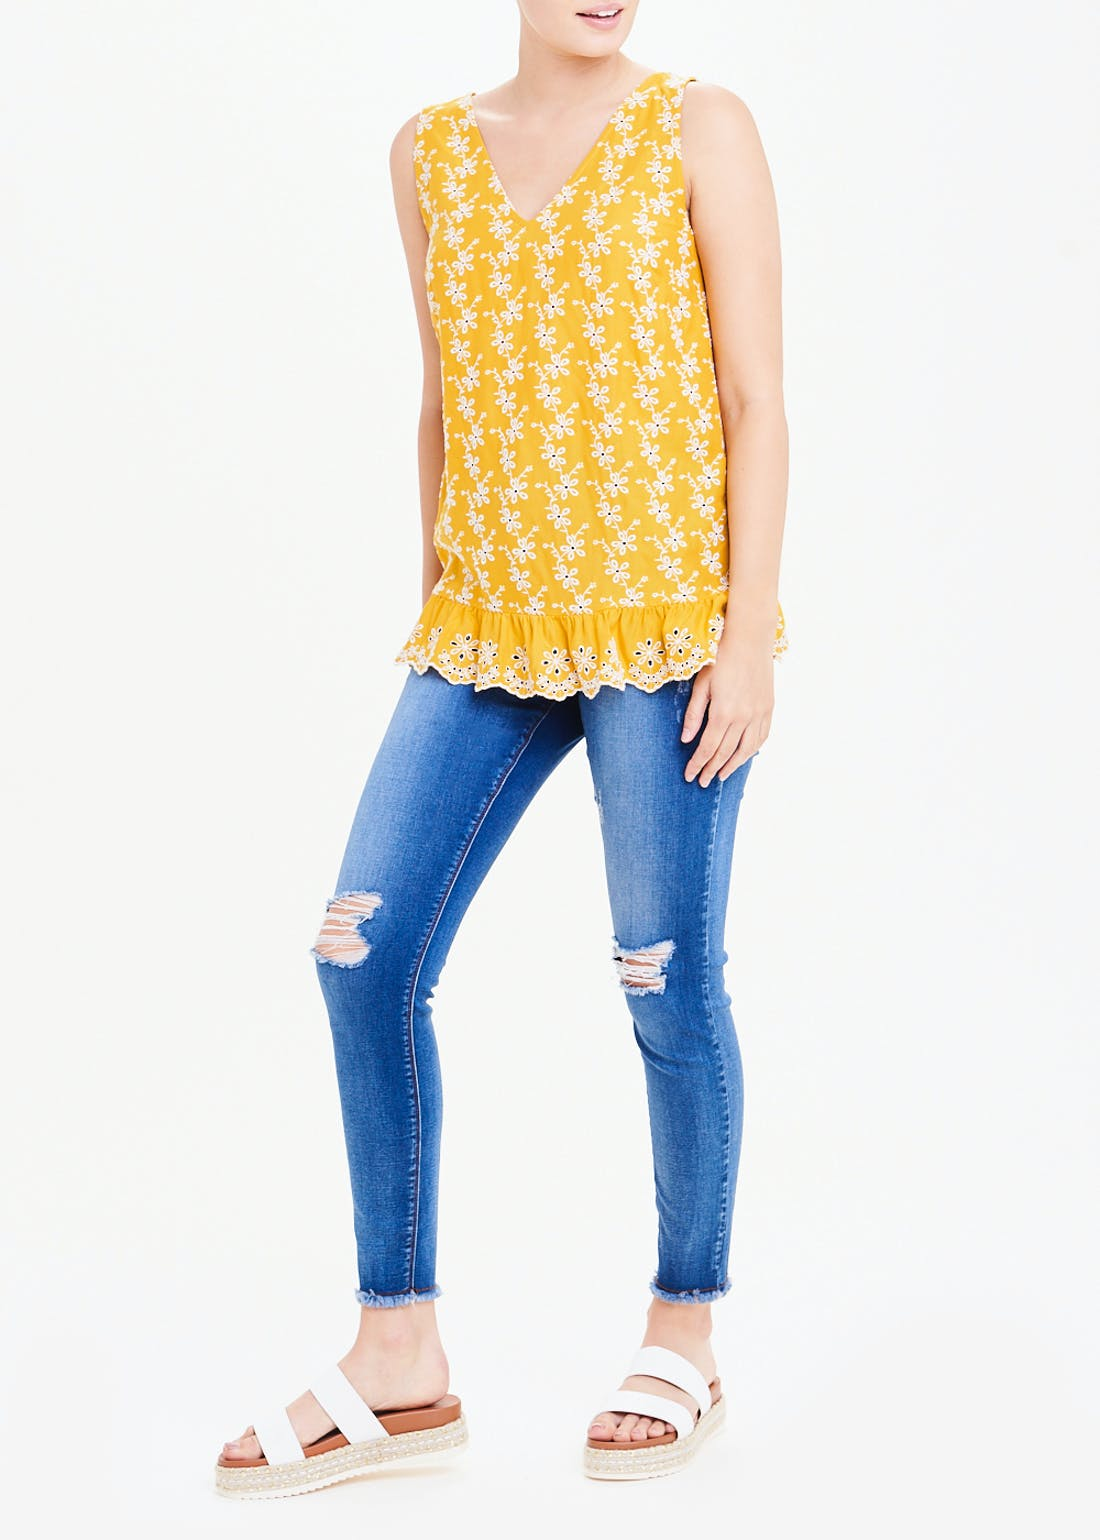 Falmer Yellow Floral Broderie Vest Top